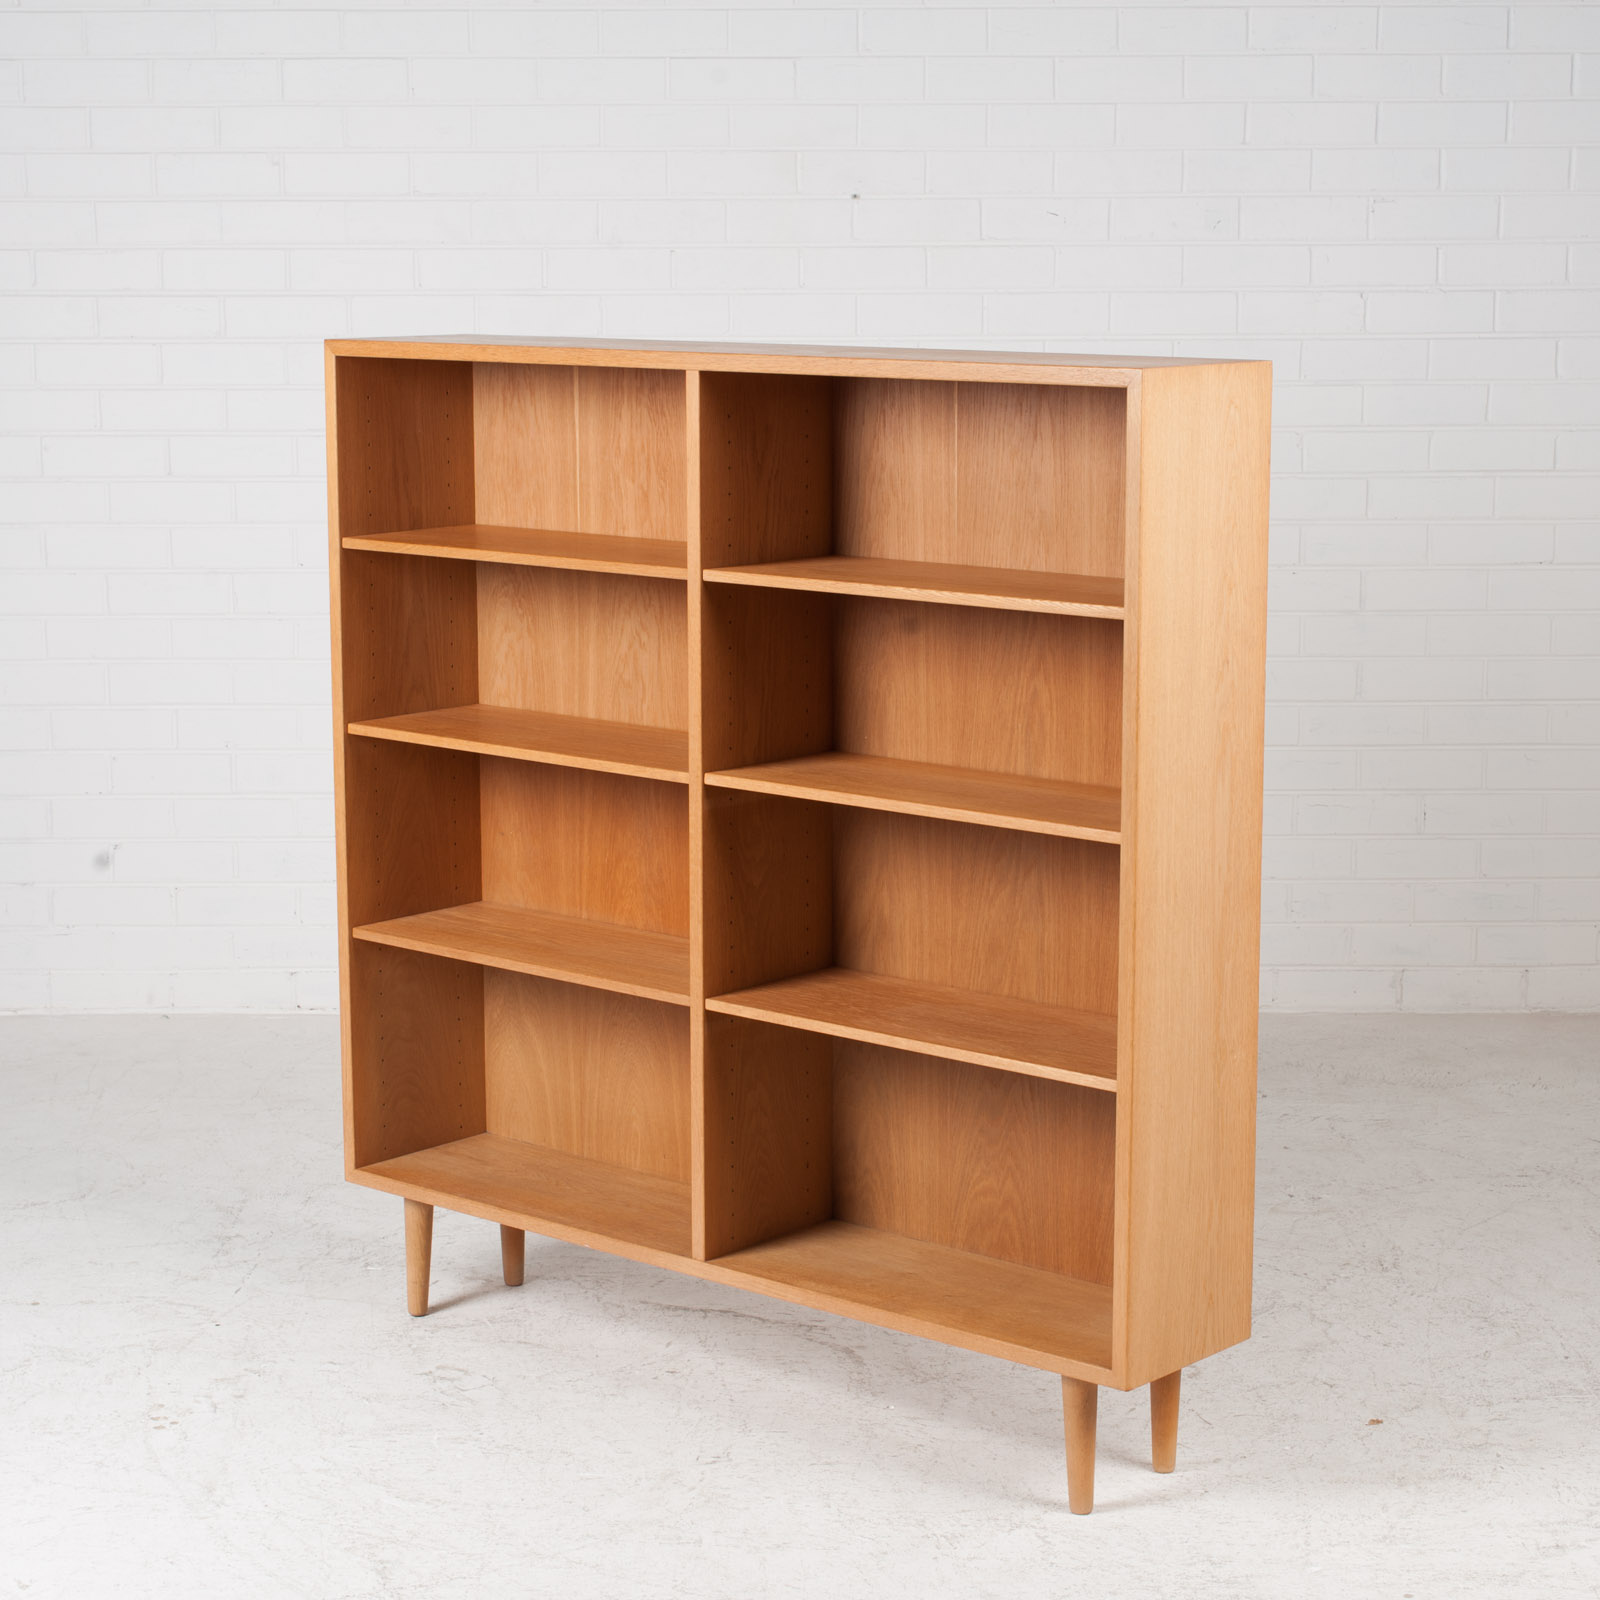 Bookcase By Borge Mogensen In Oak 1960s Denmark 03